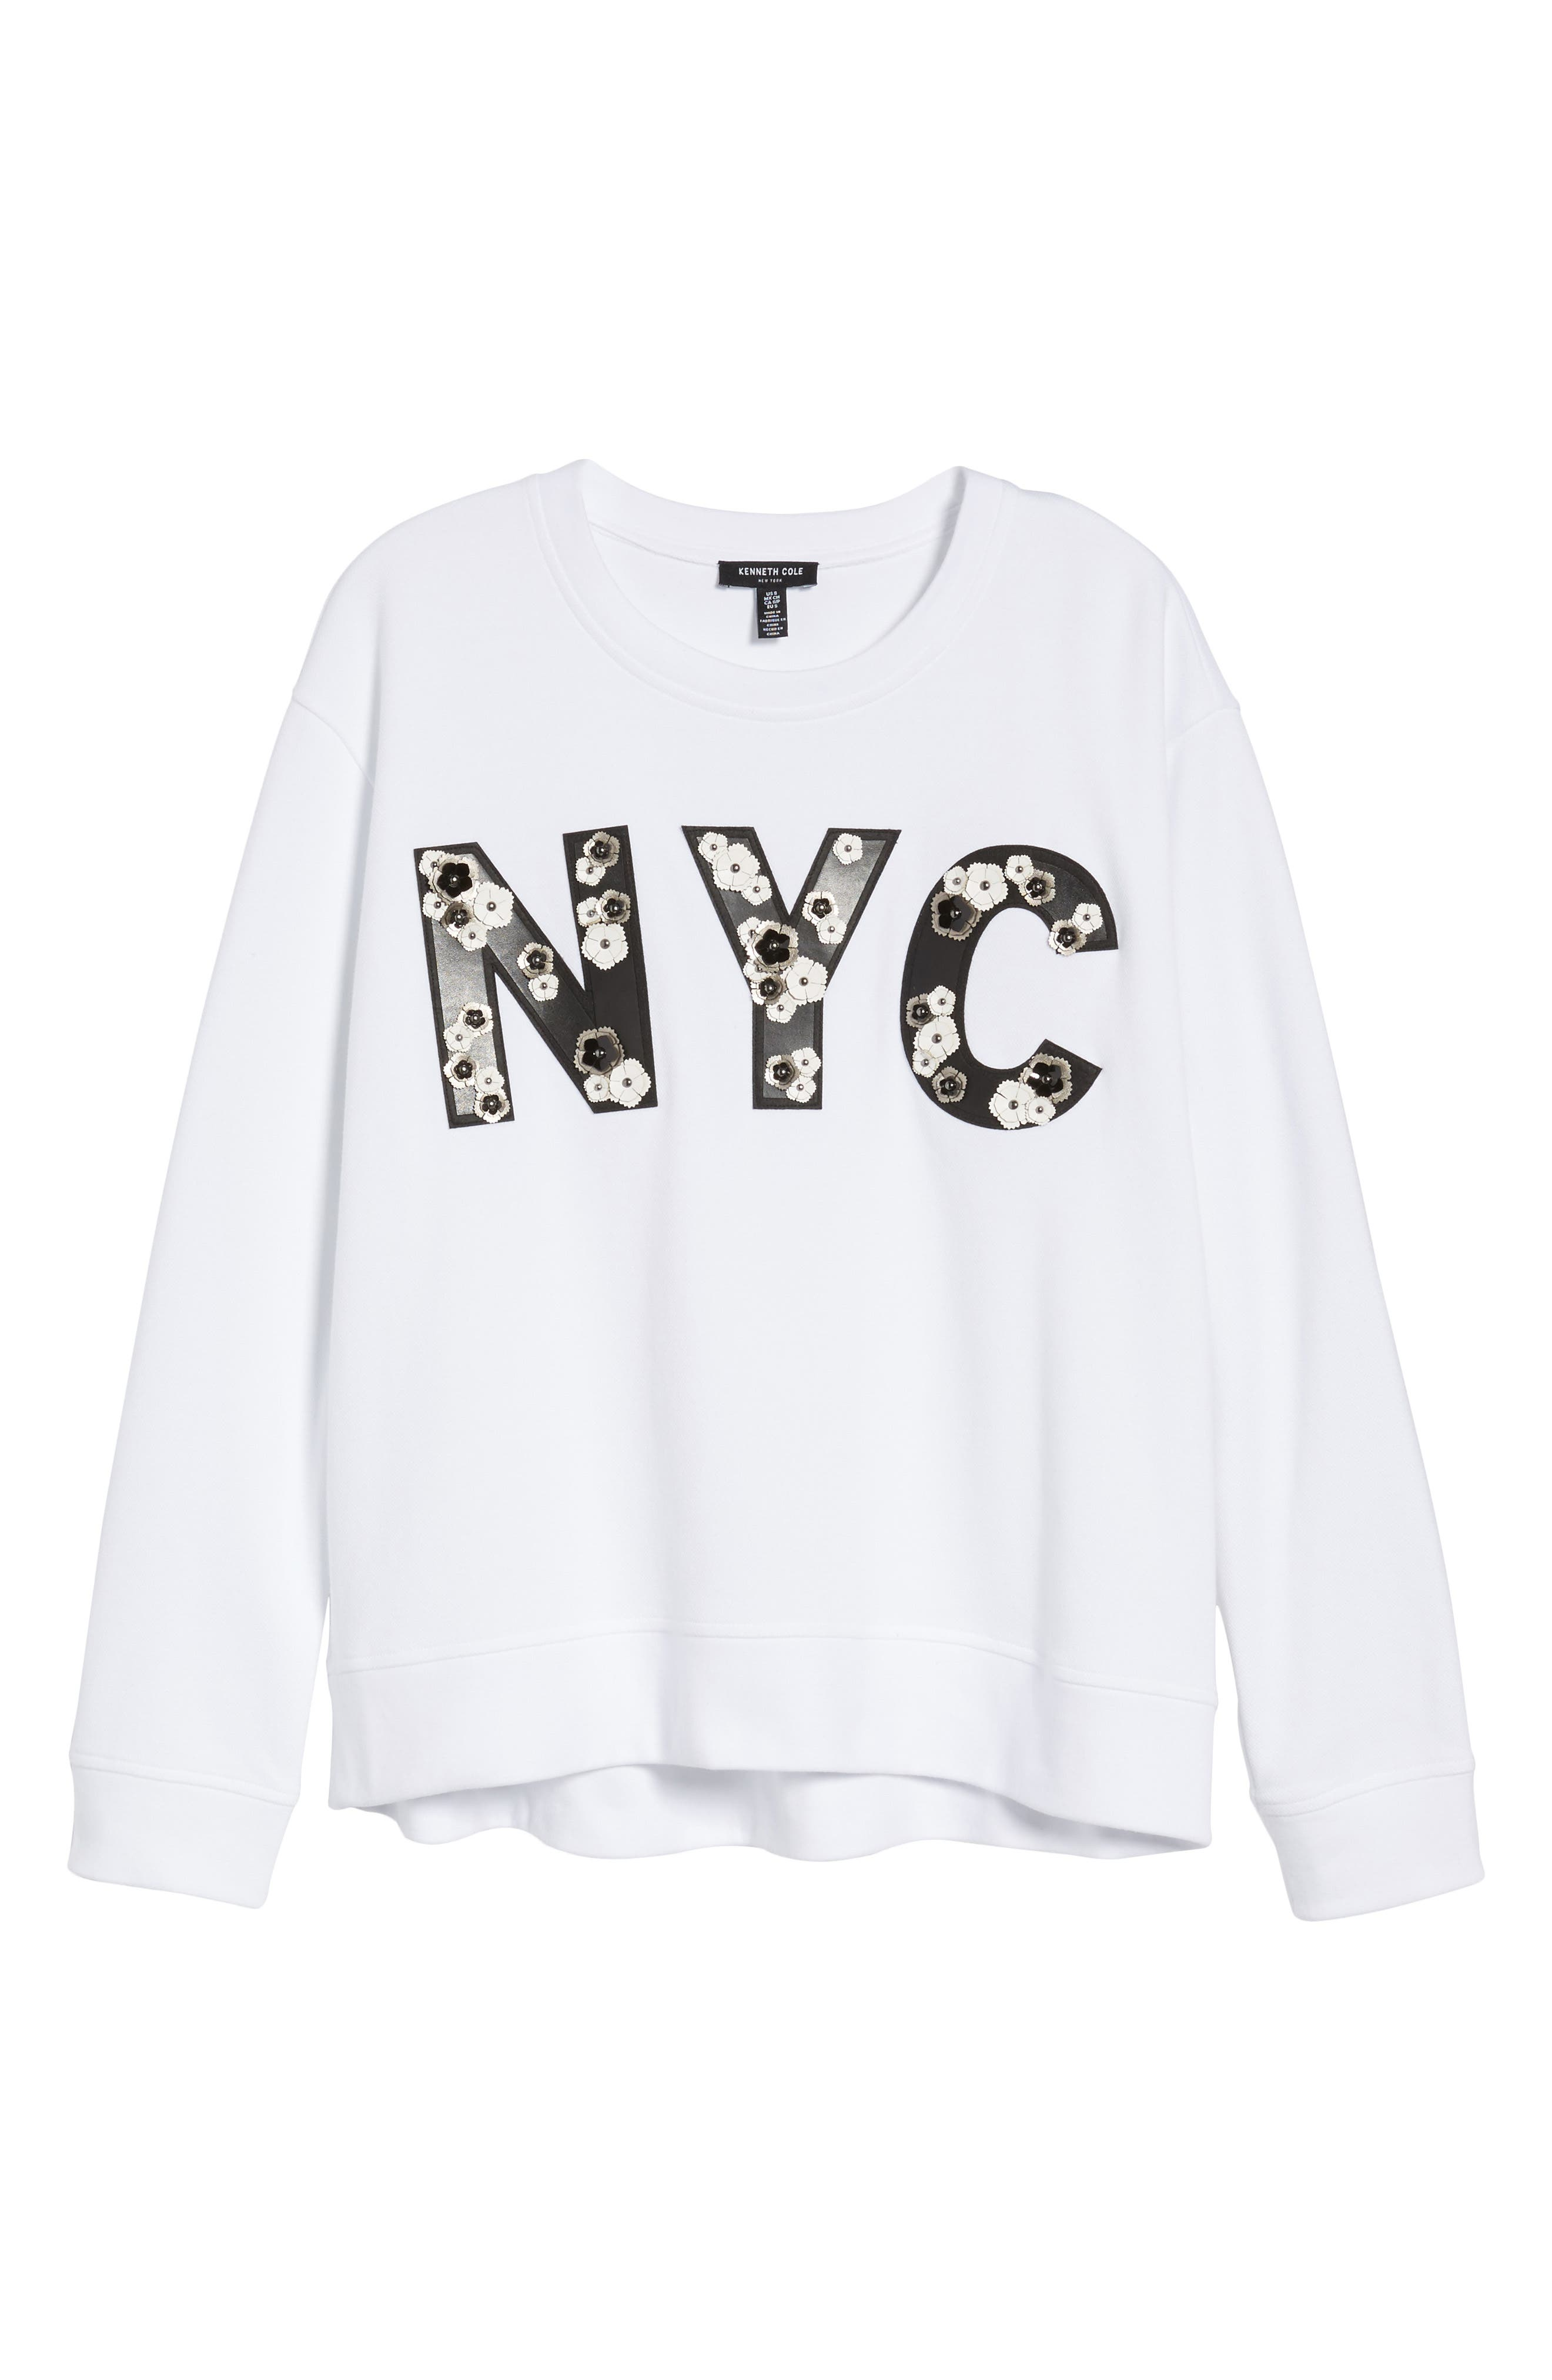 NYC Sweatshirt,                             Alternate thumbnail 7, color,                             White